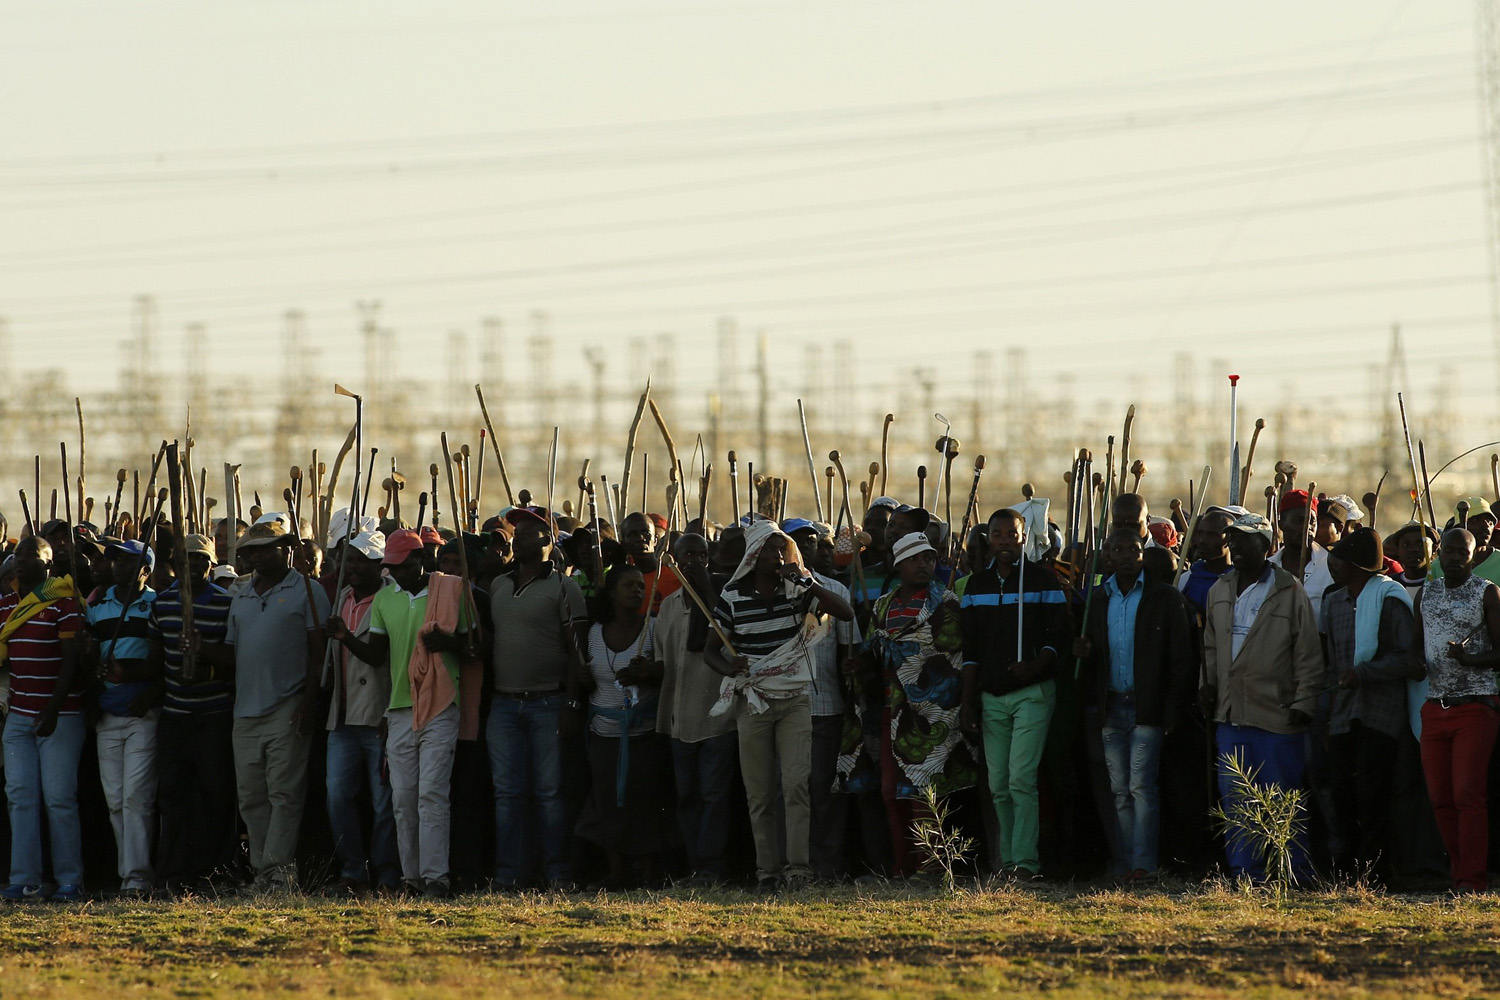 May 13, 2014. Miners on strike chant slogans as they march in Nkaneng township outside the Lonmin mine in Rustenburg,  South Africa.